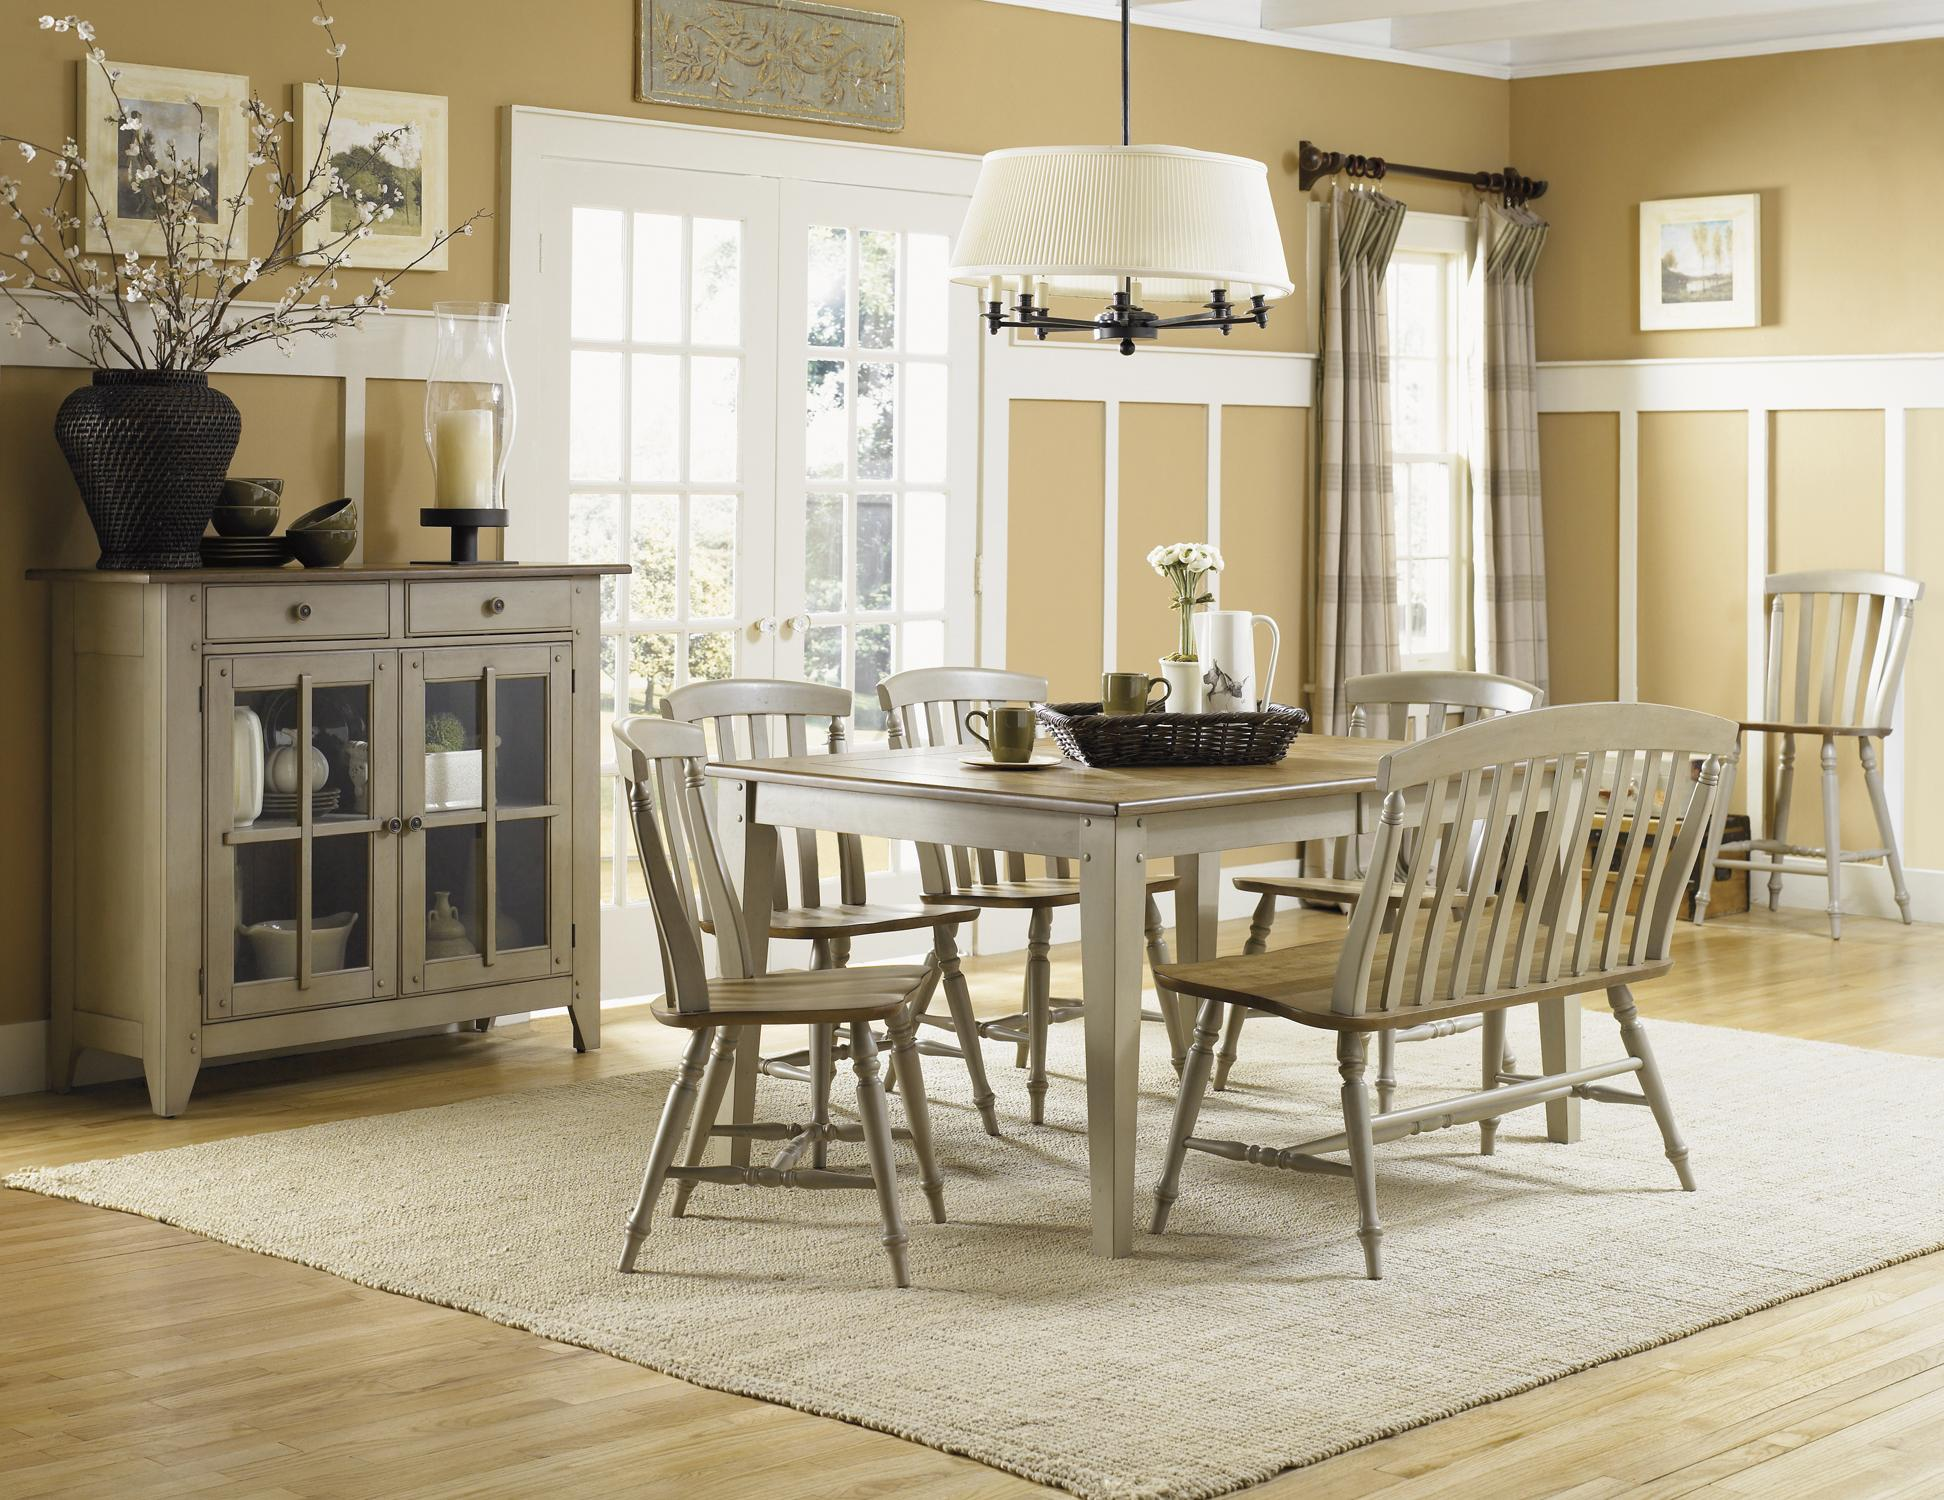 al s chairs and tables outdoor porch rocking liberty furniture fresco driftwood taupe dinette